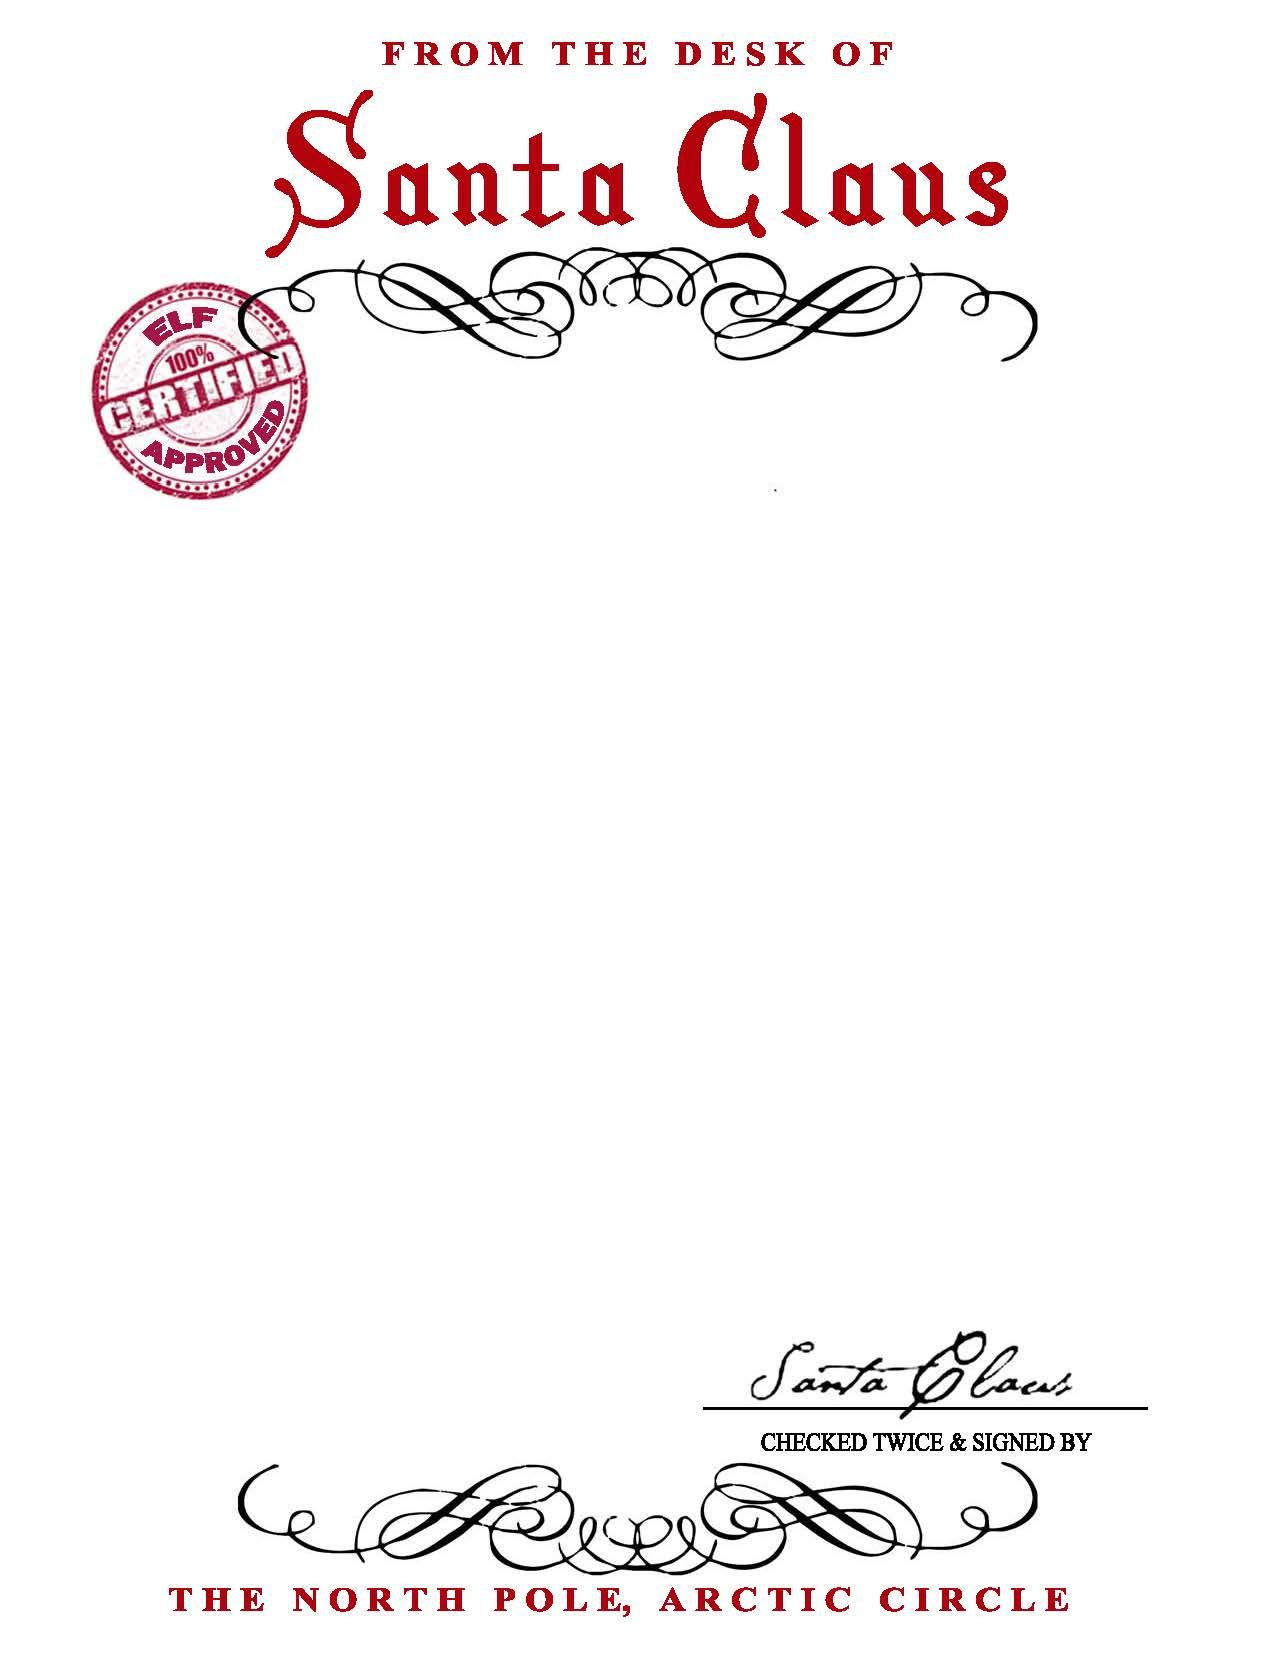 photograph relating to Letter From Santa Template Printable identified as SANTA CLAUS LETTERHEAD.. Will convey a great deal of contentment in direction of young children